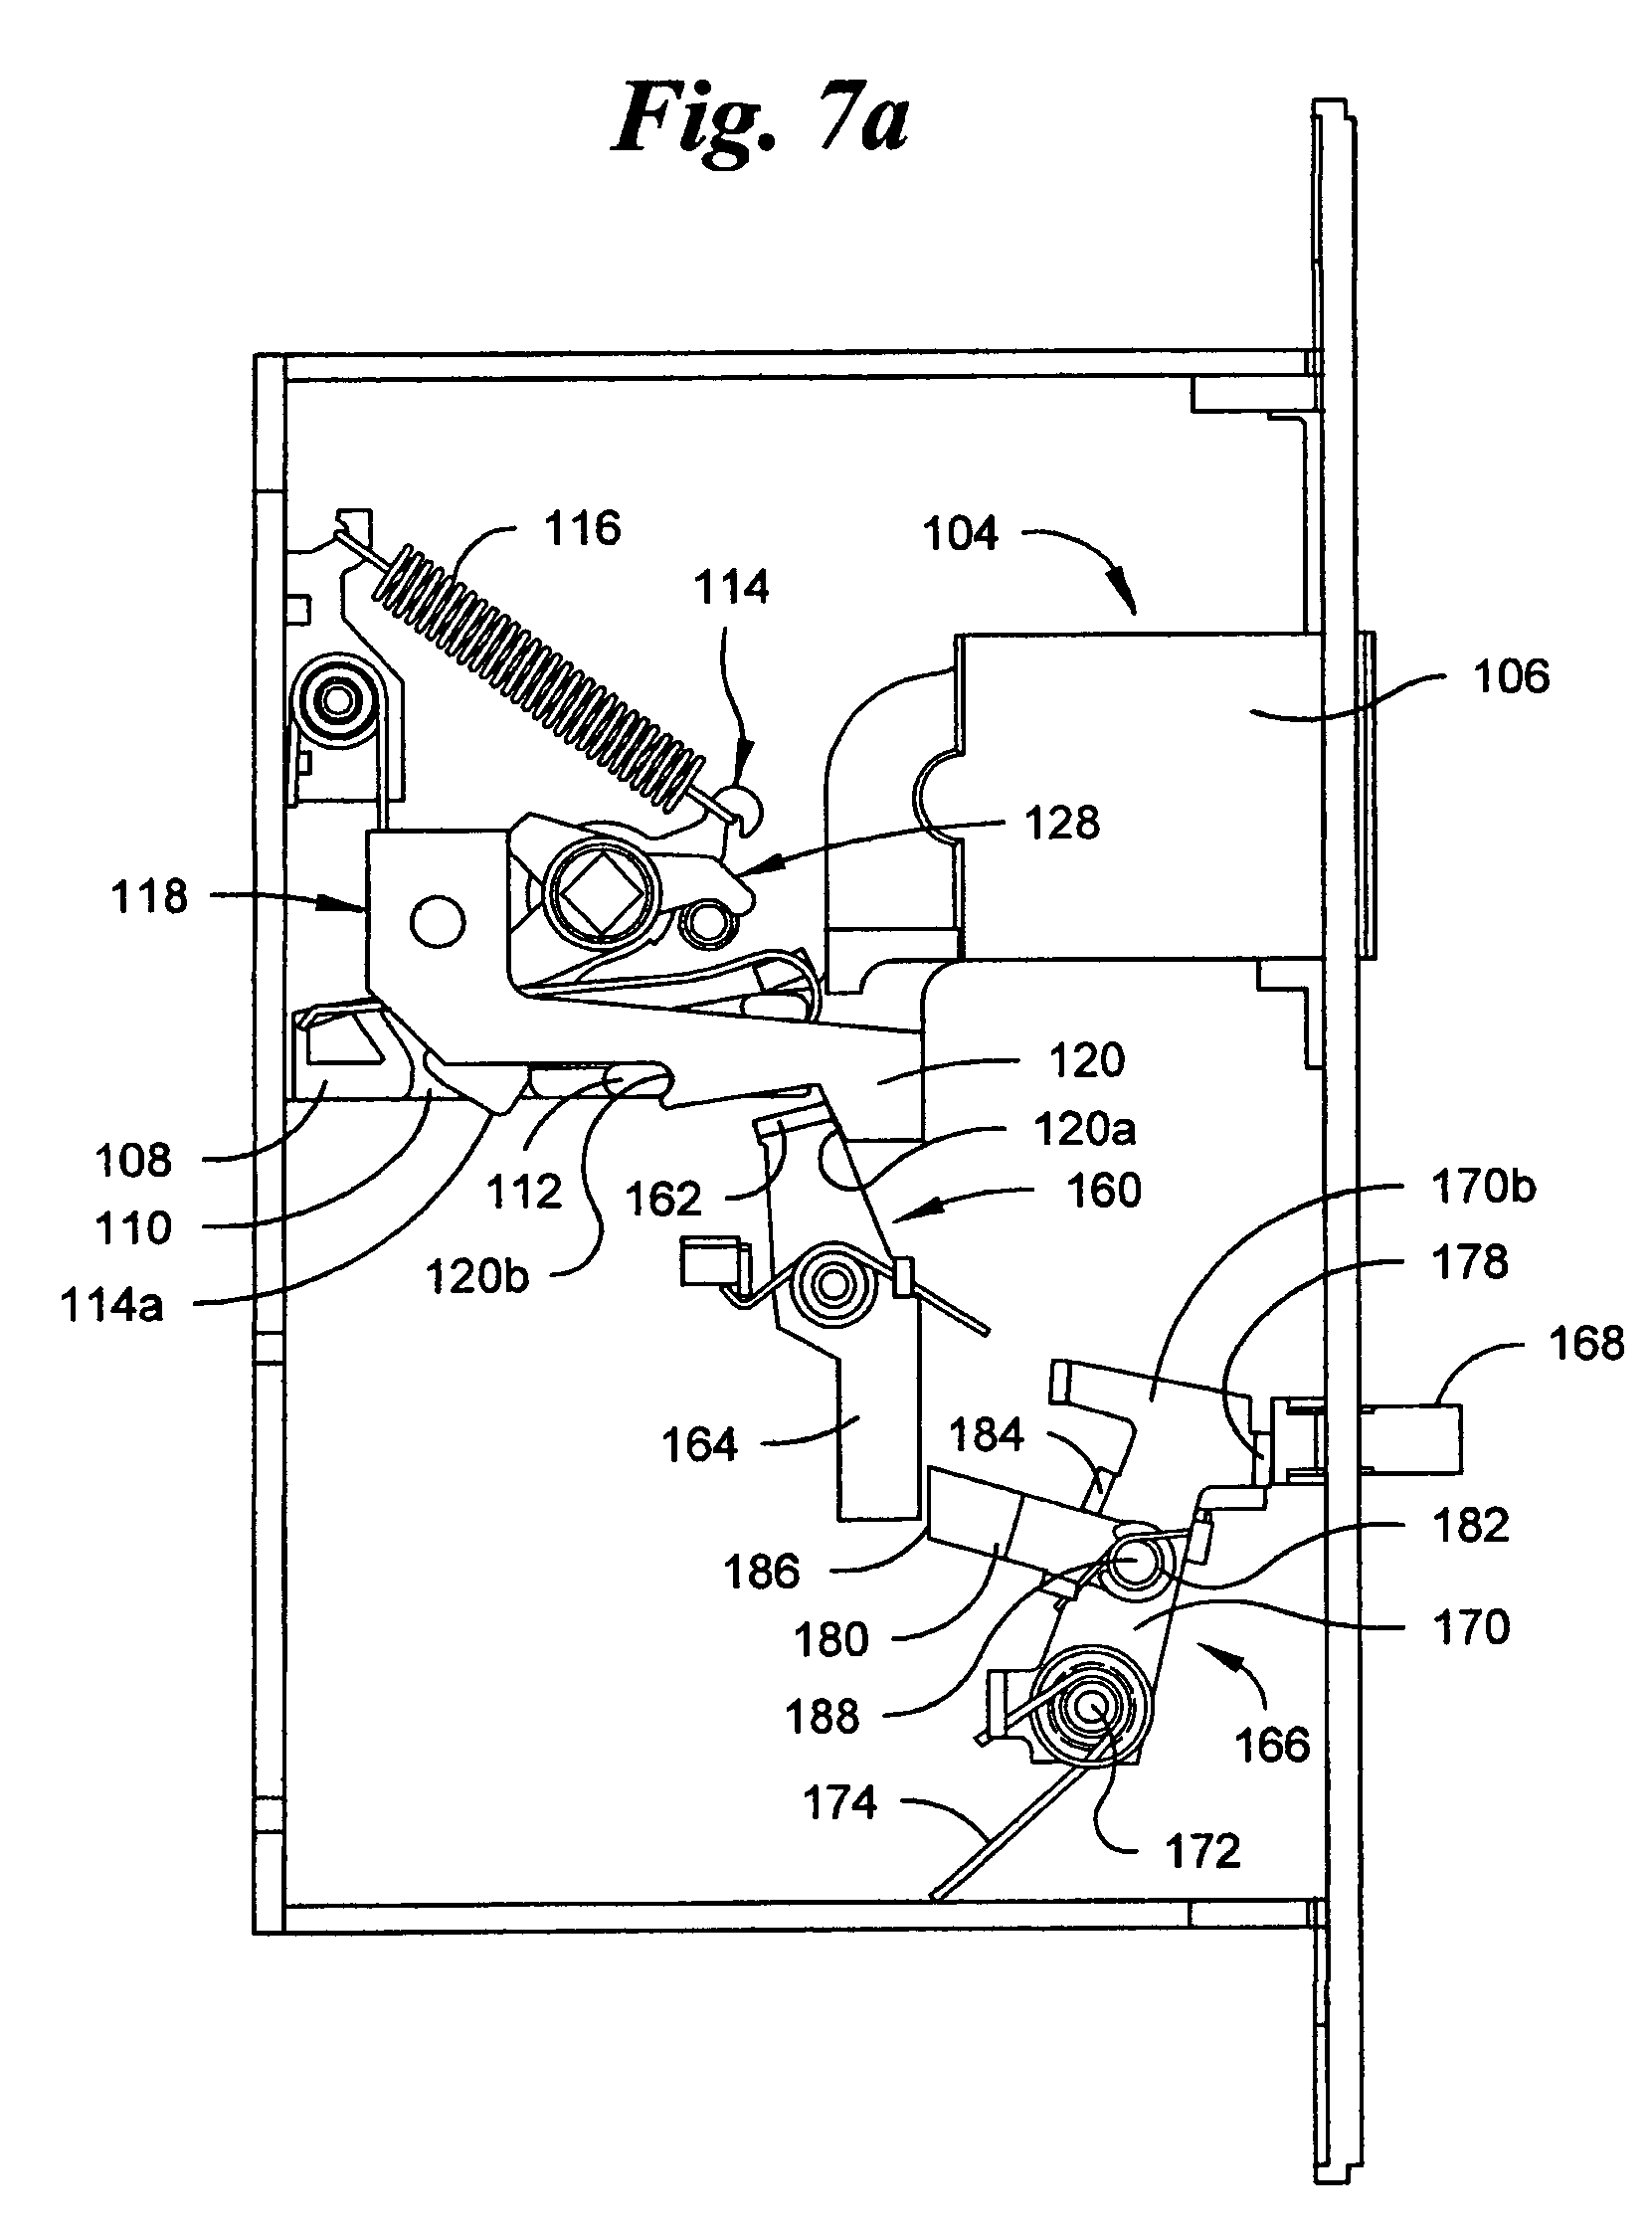 mortise lock parts diagram wiring telstra wall socket patent us7007985 automatic deadbolt mechanism for a